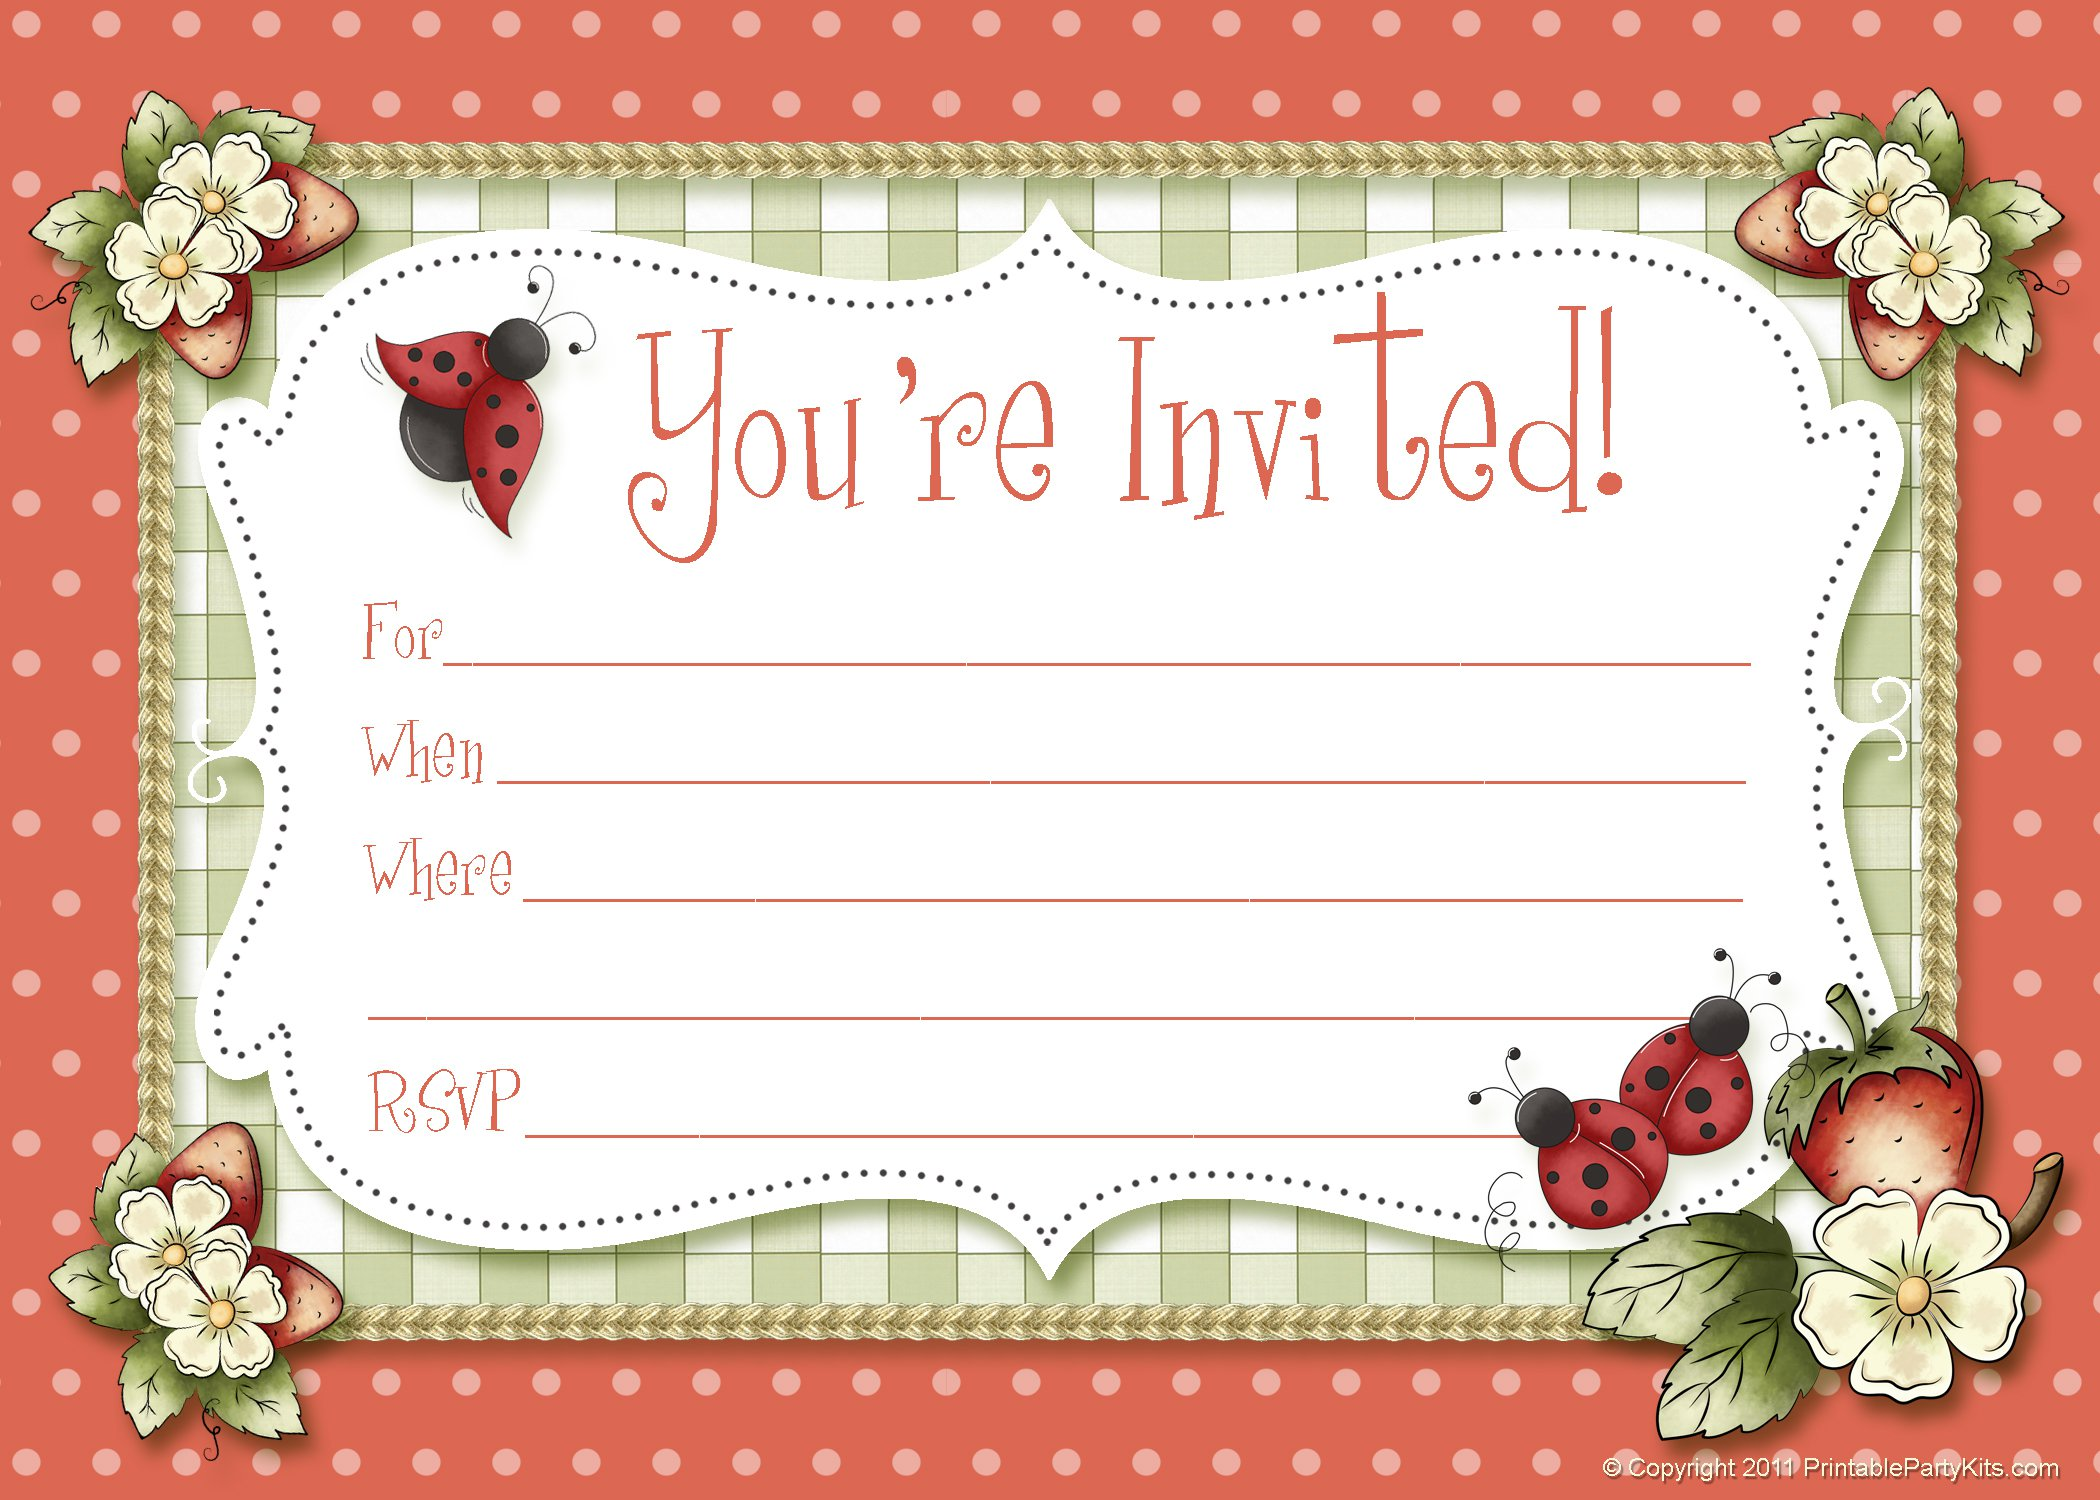 online birthday invitation card maker with photo ; birthday-invitation-maker-with-photo